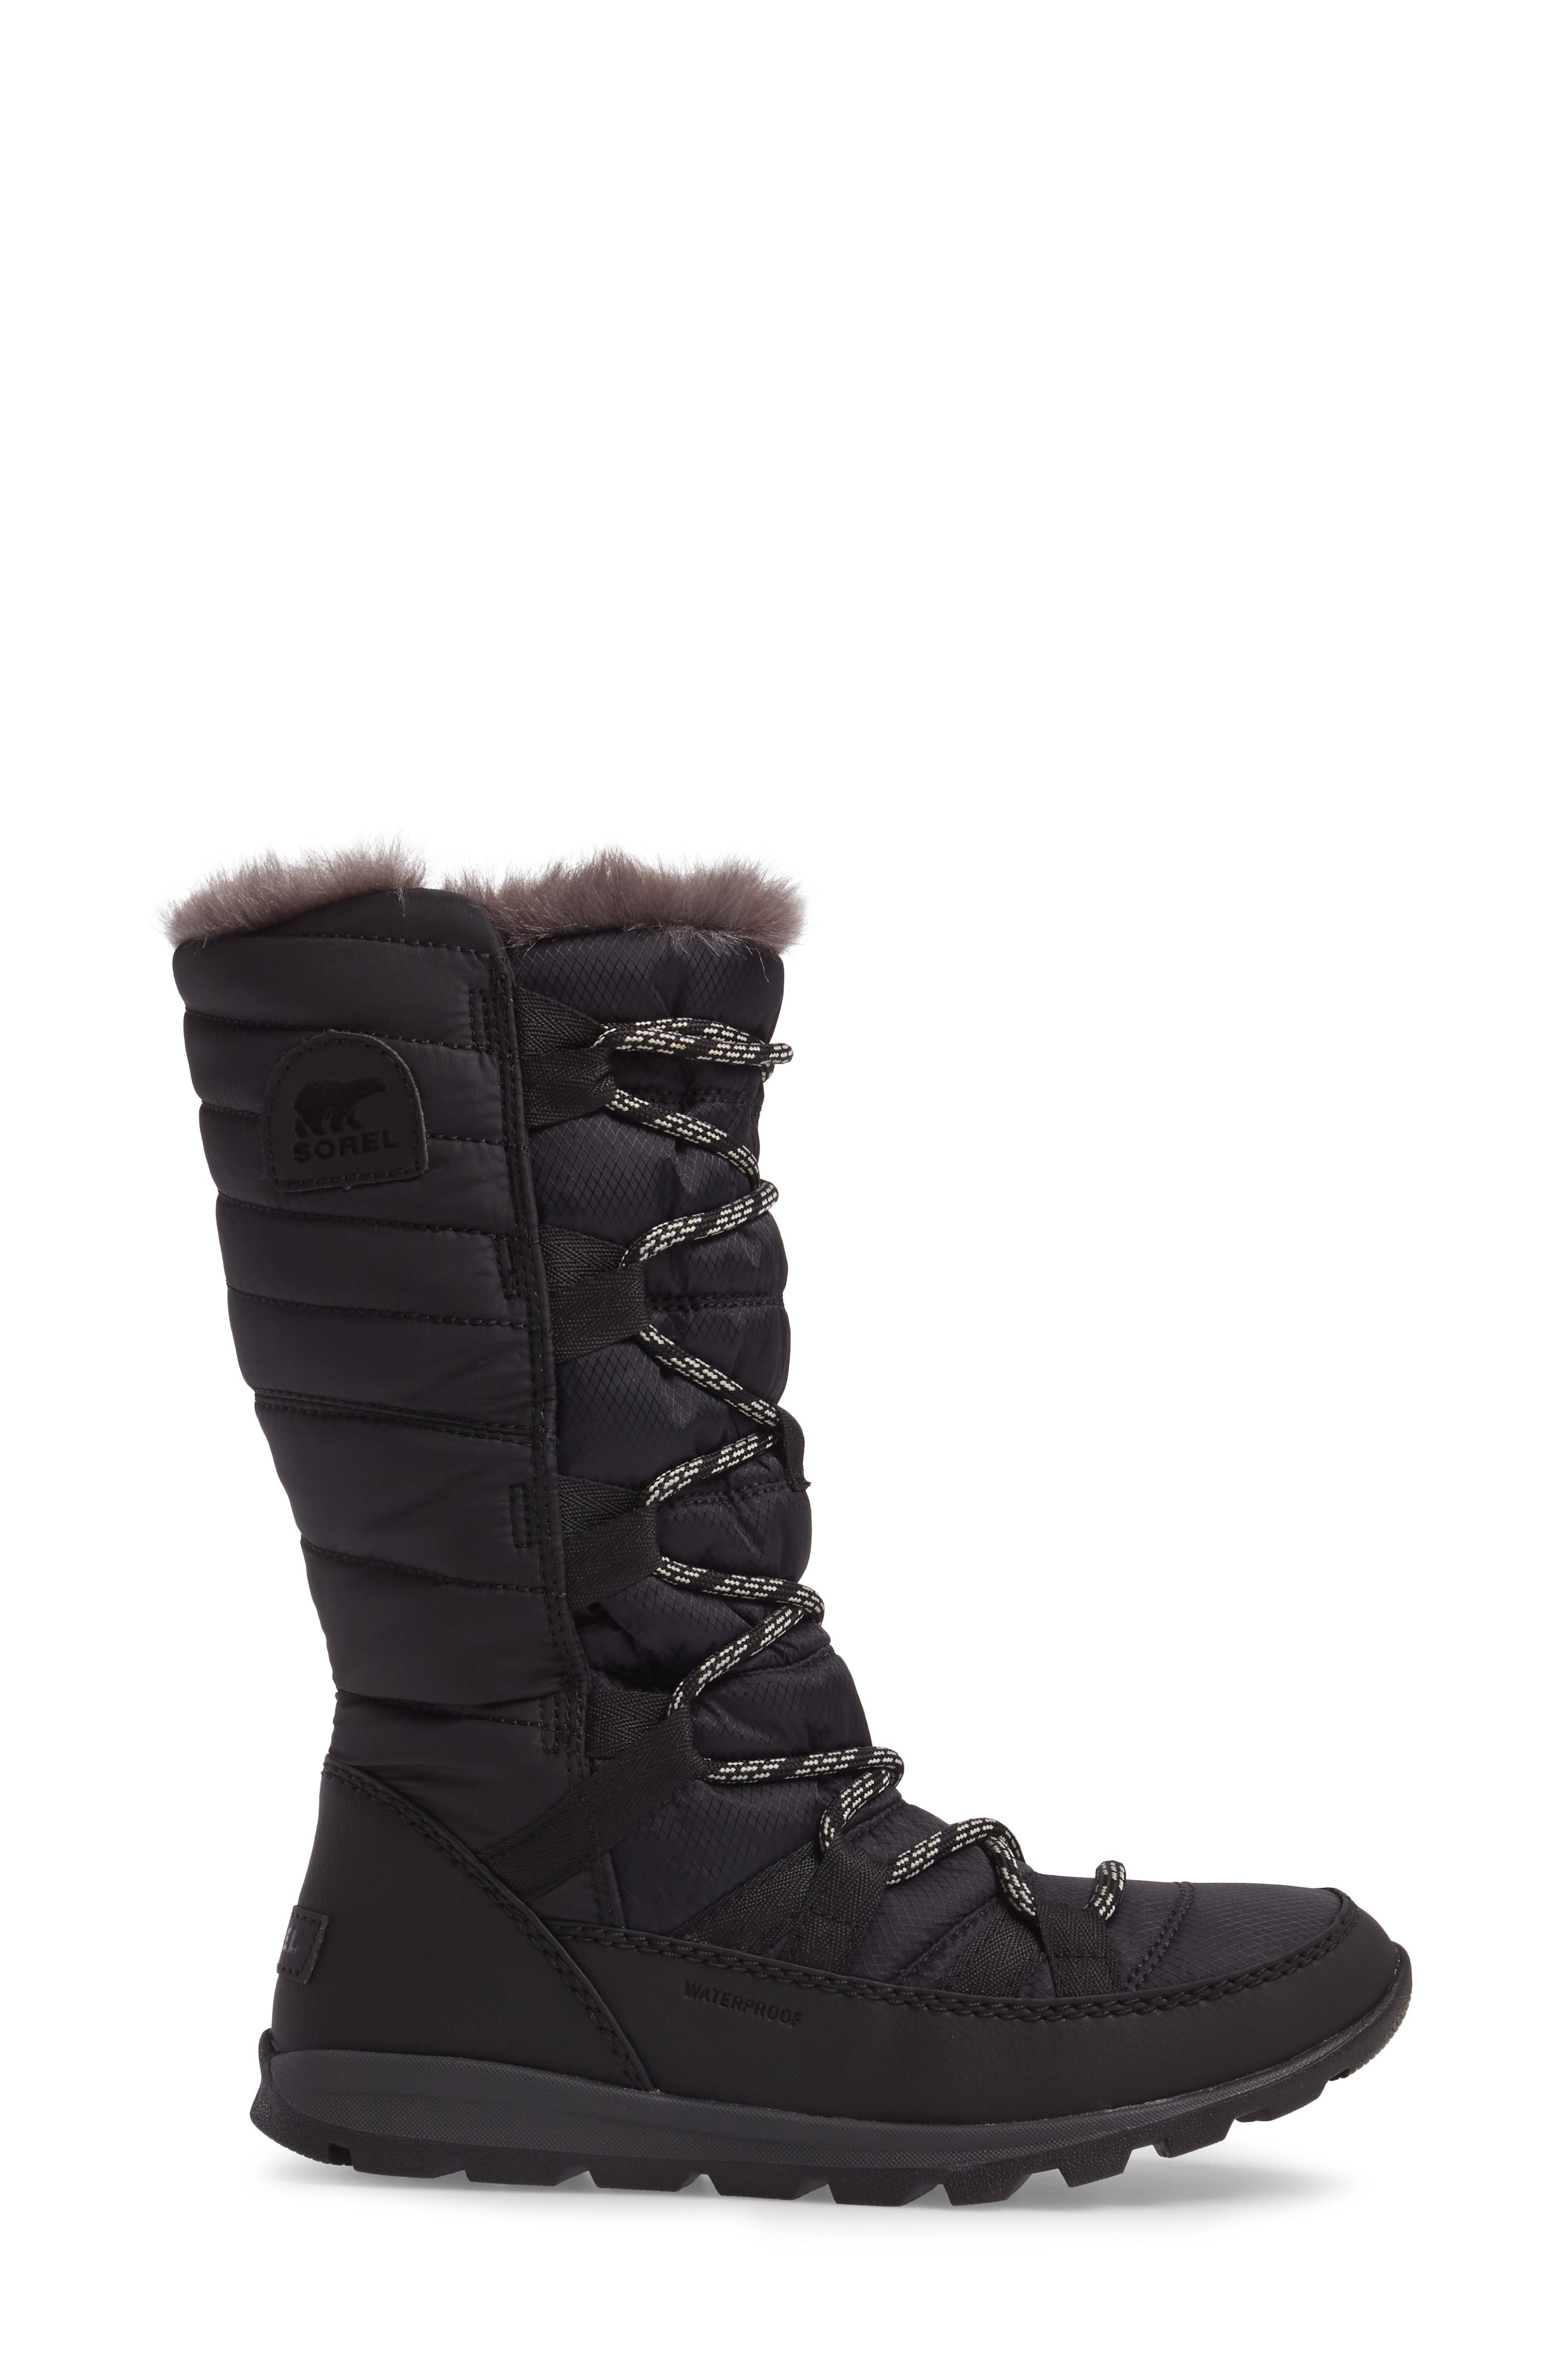 Whitney Snow Boot,                             Alternate thumbnail 5, color,